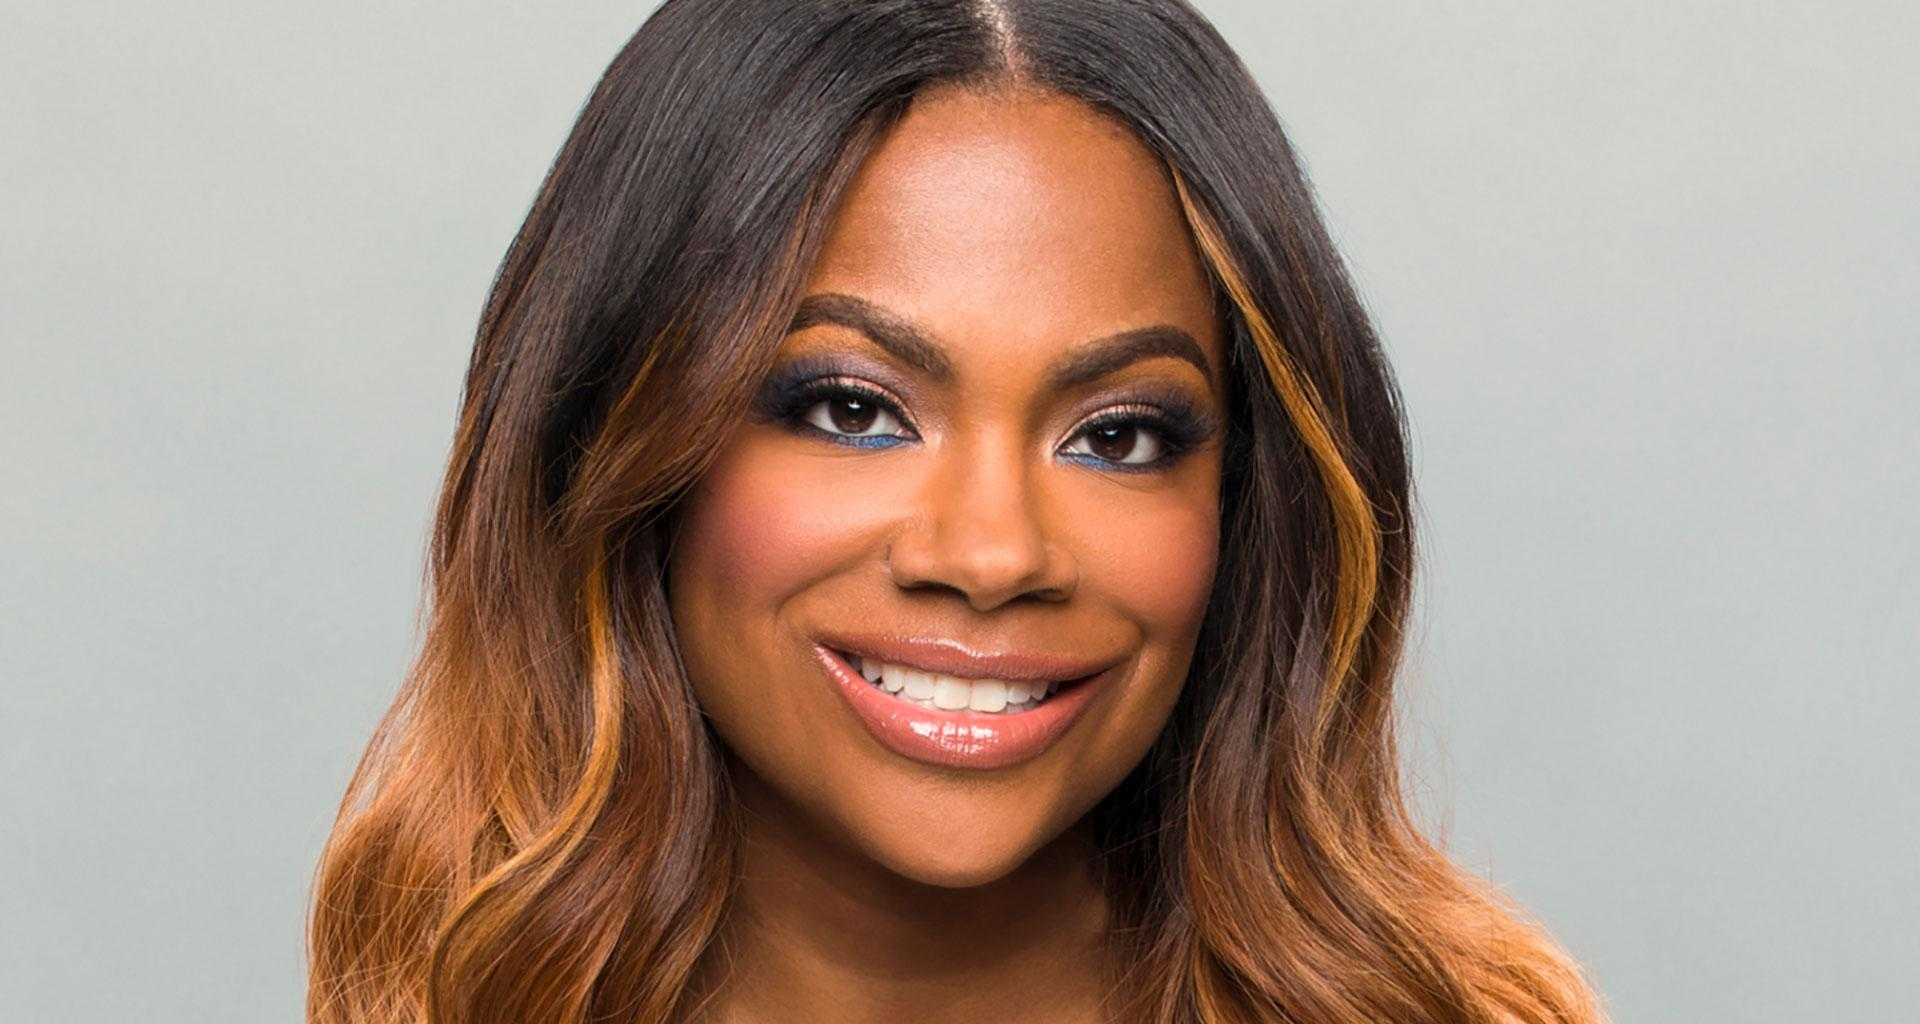 Kandi Burruss' Fans Want That Whoever Is Running Her IG Page To Start Promoting CBB More